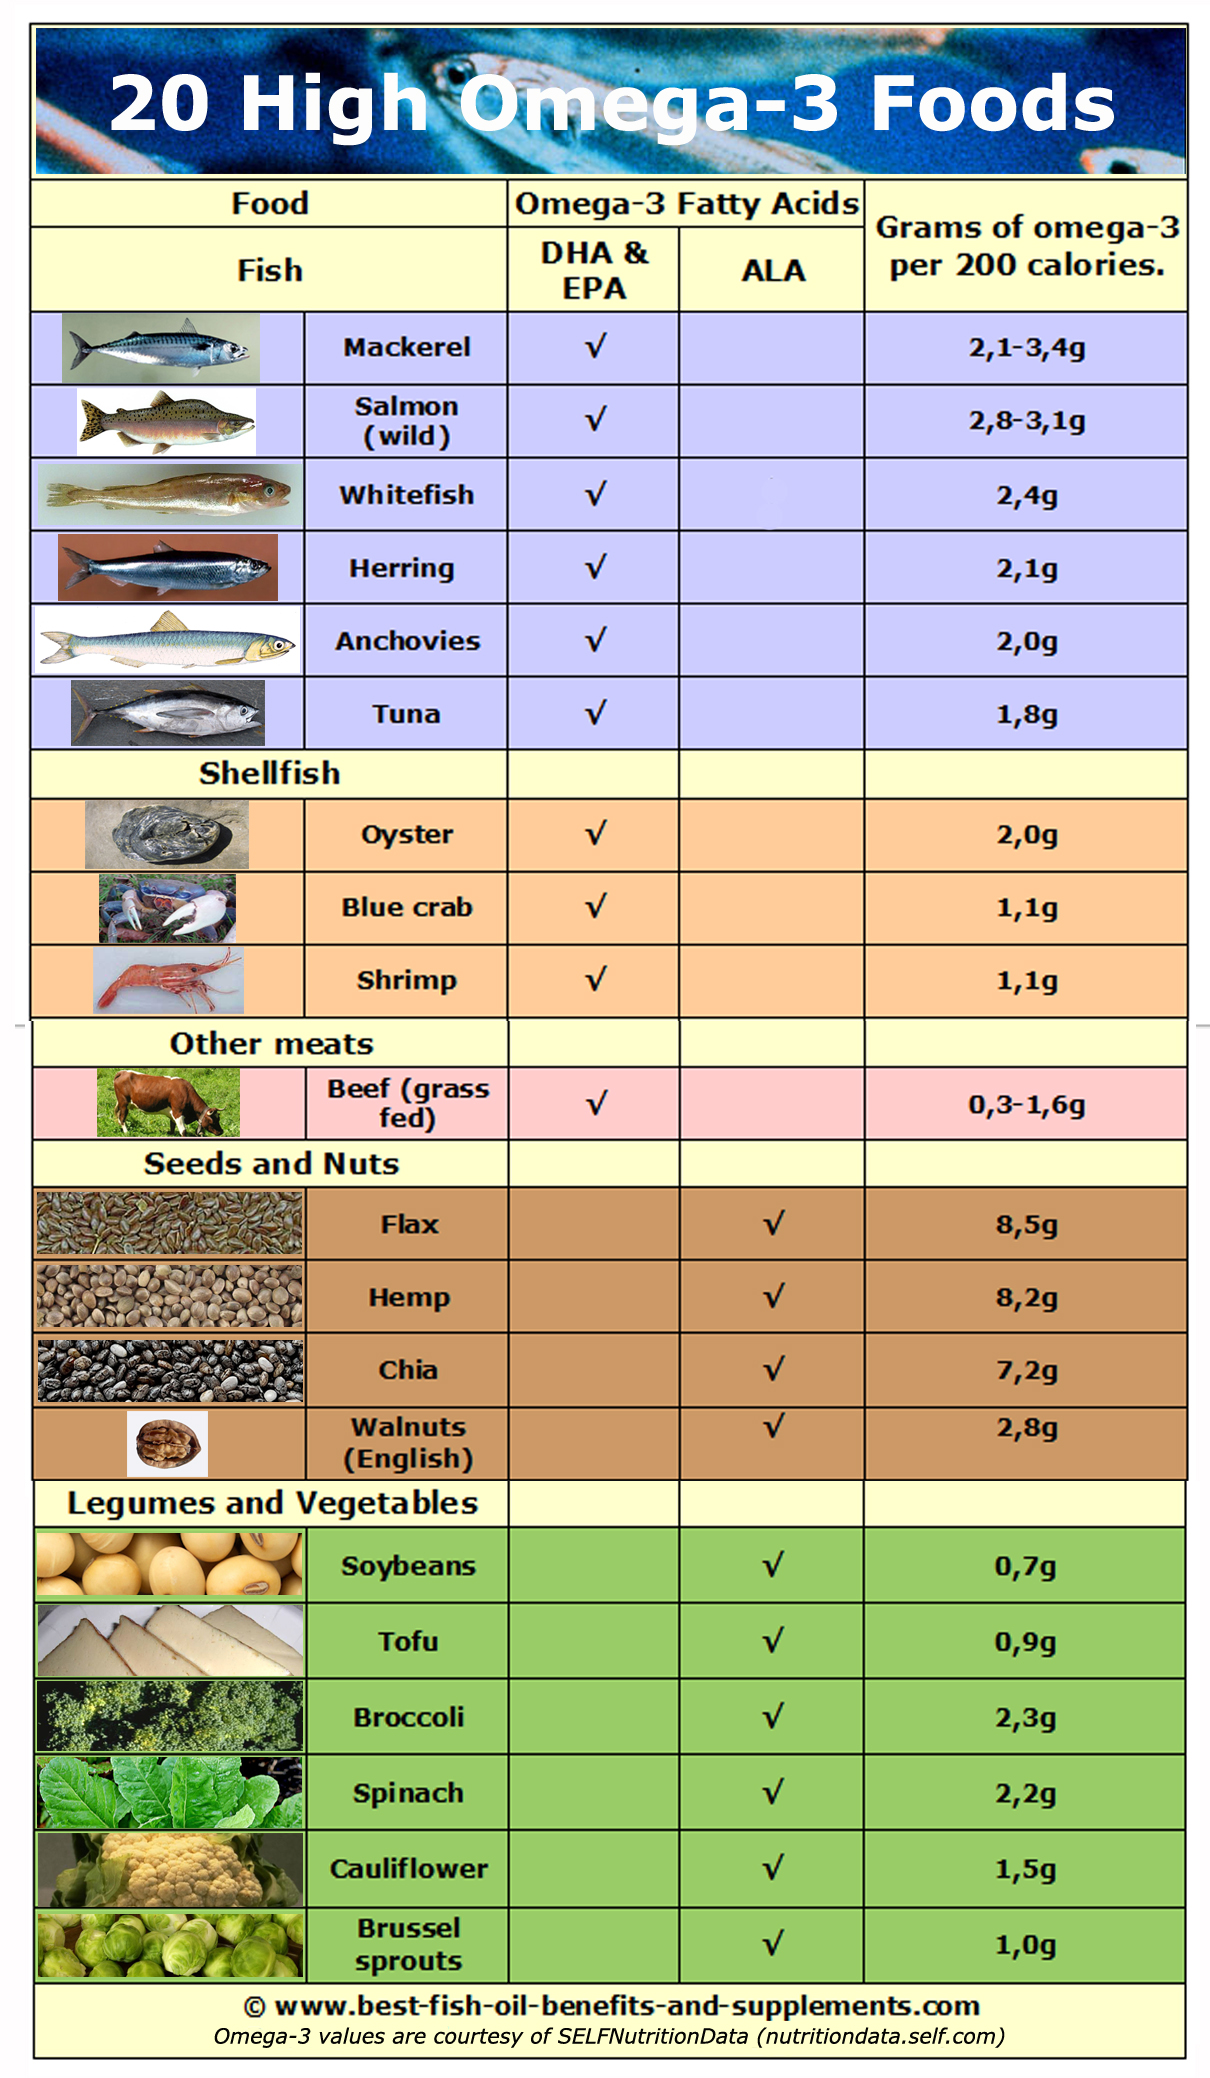 20 rich omega-3 foods chart showing grams of omega-3 per 200 calorie serving.